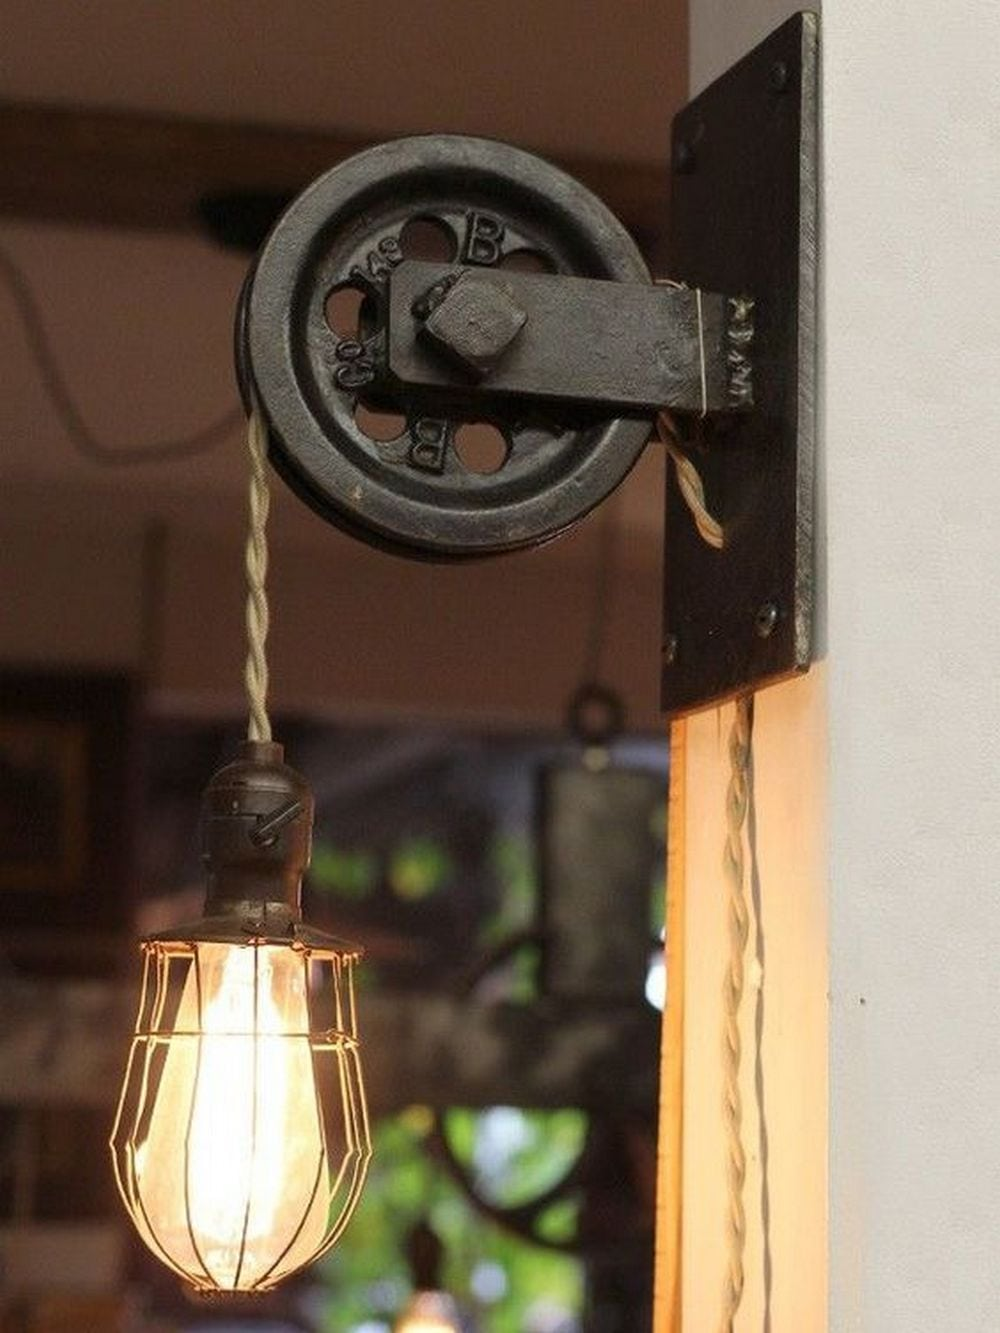 This vintage-style pulley lamp will add character to any room you put it in.